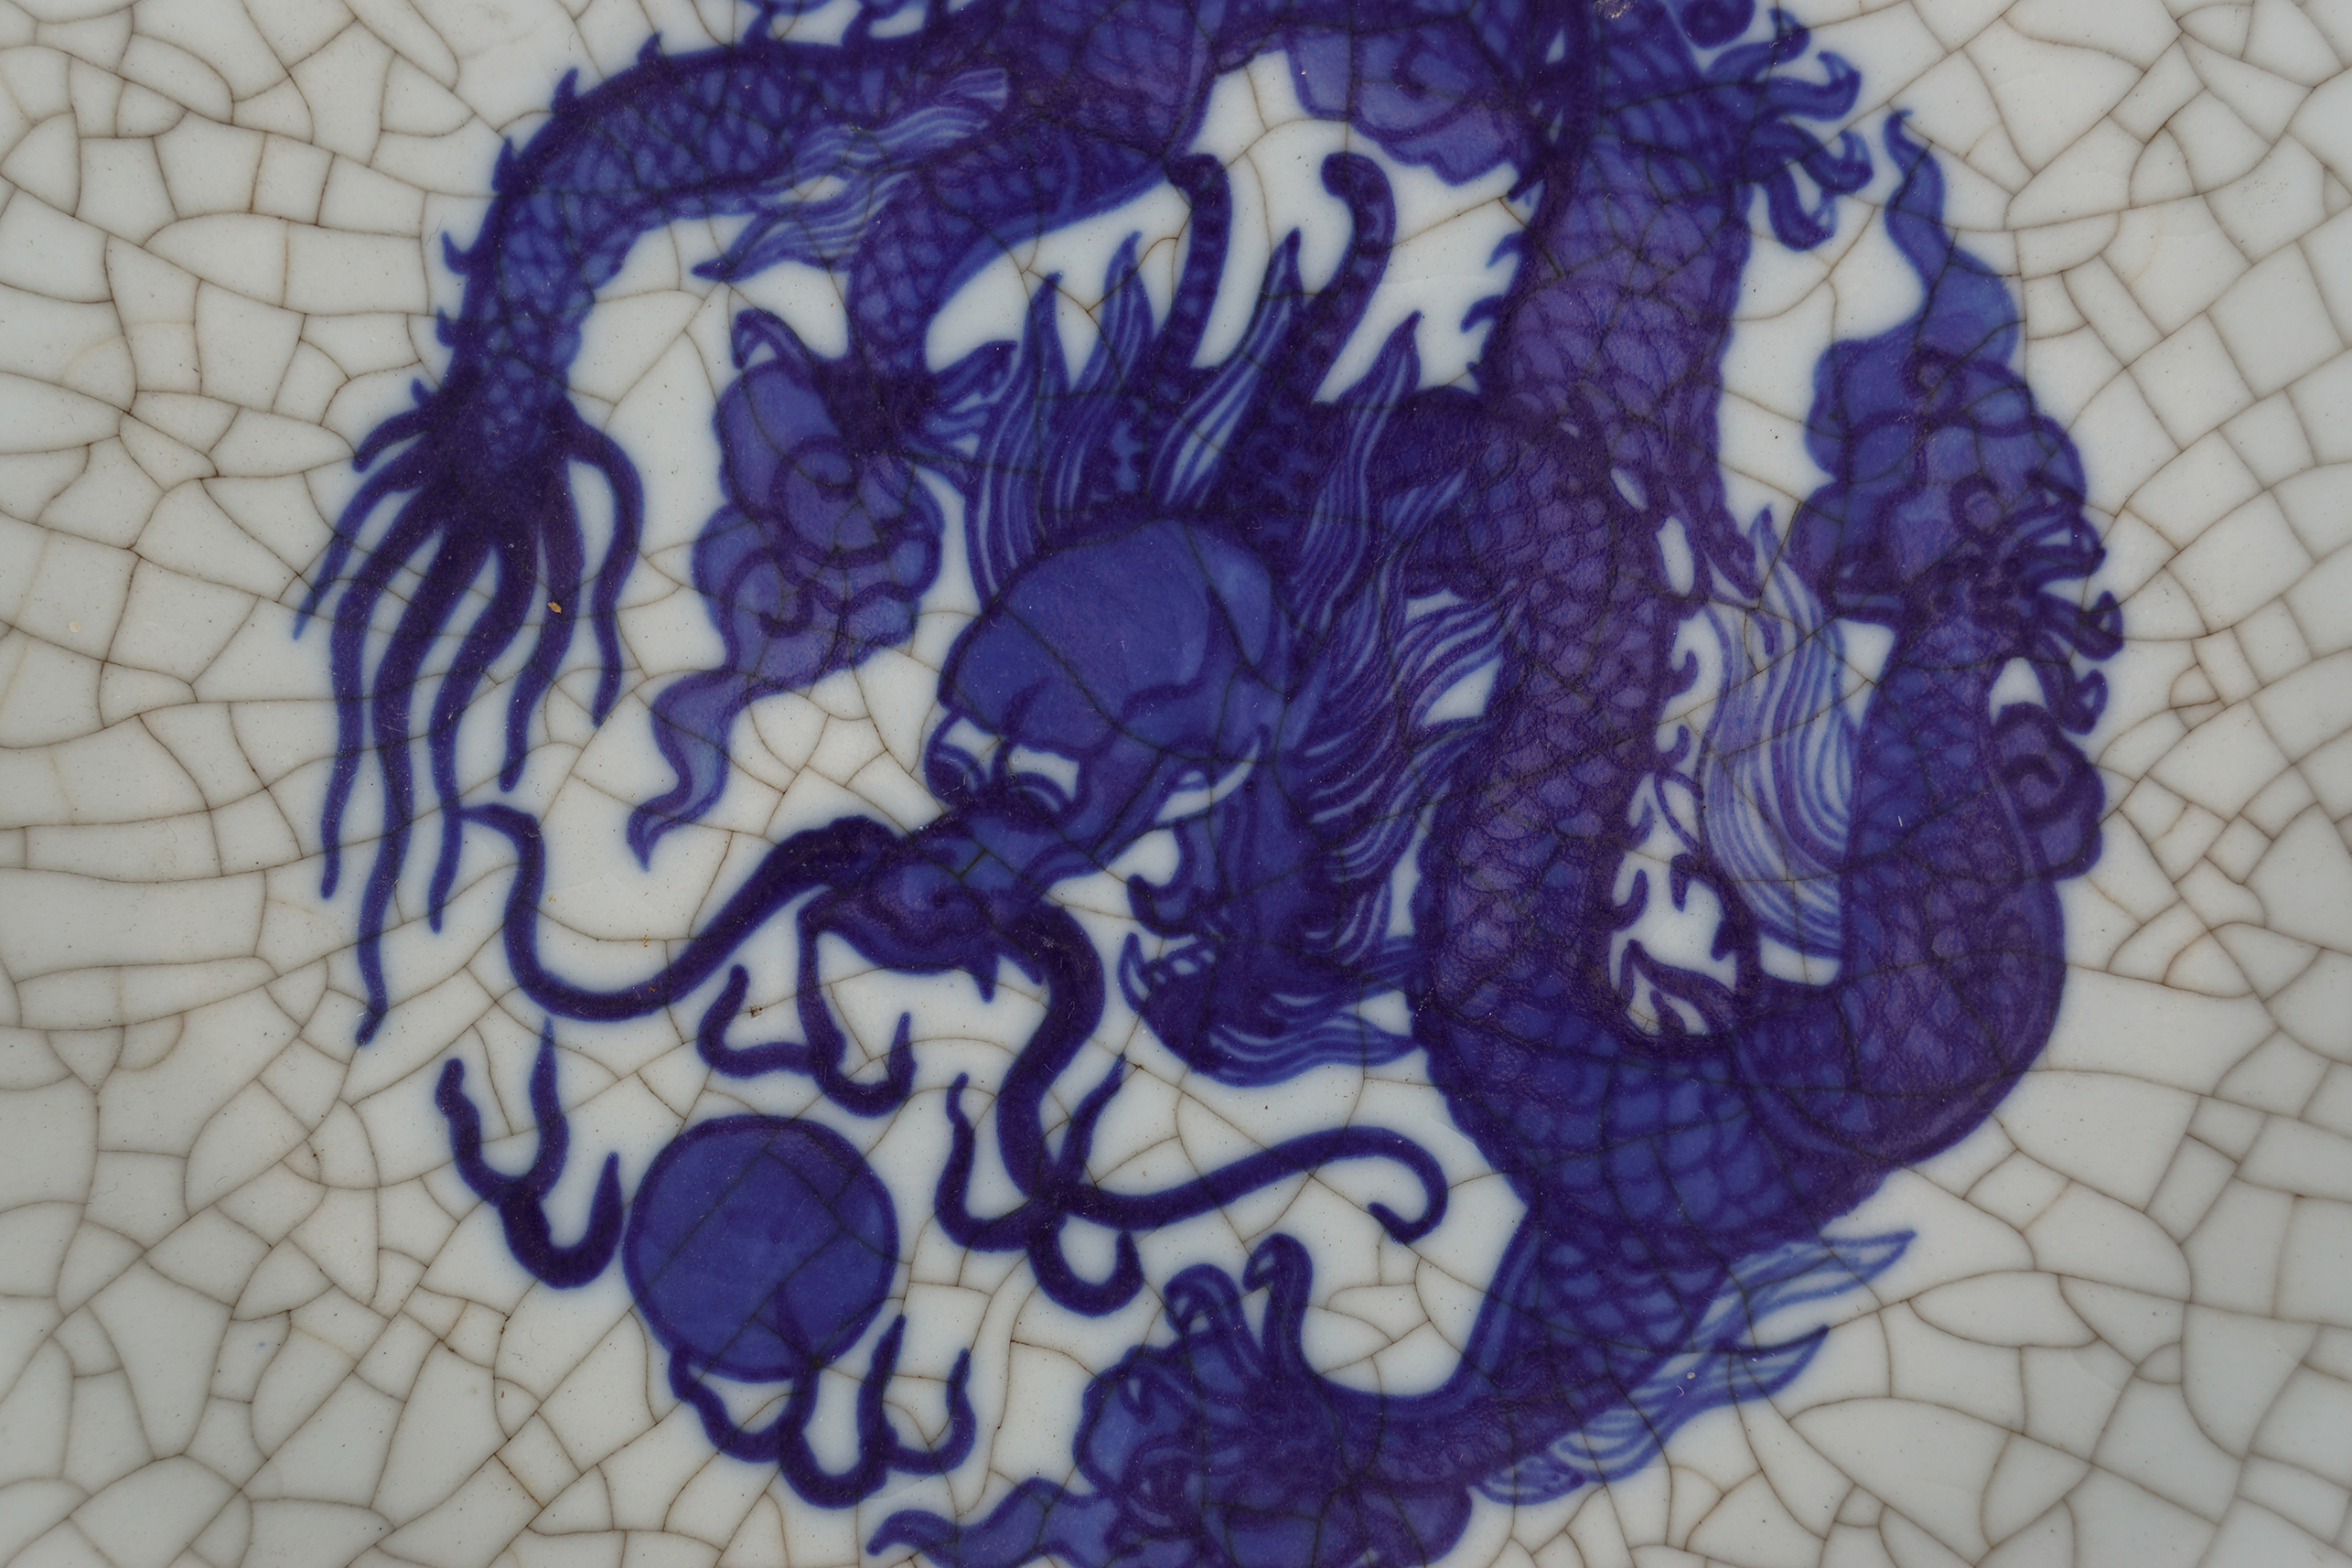 CHINESE SONG INSPIRED CRACKLE GLAZE CHARGER - Image 2 of 4